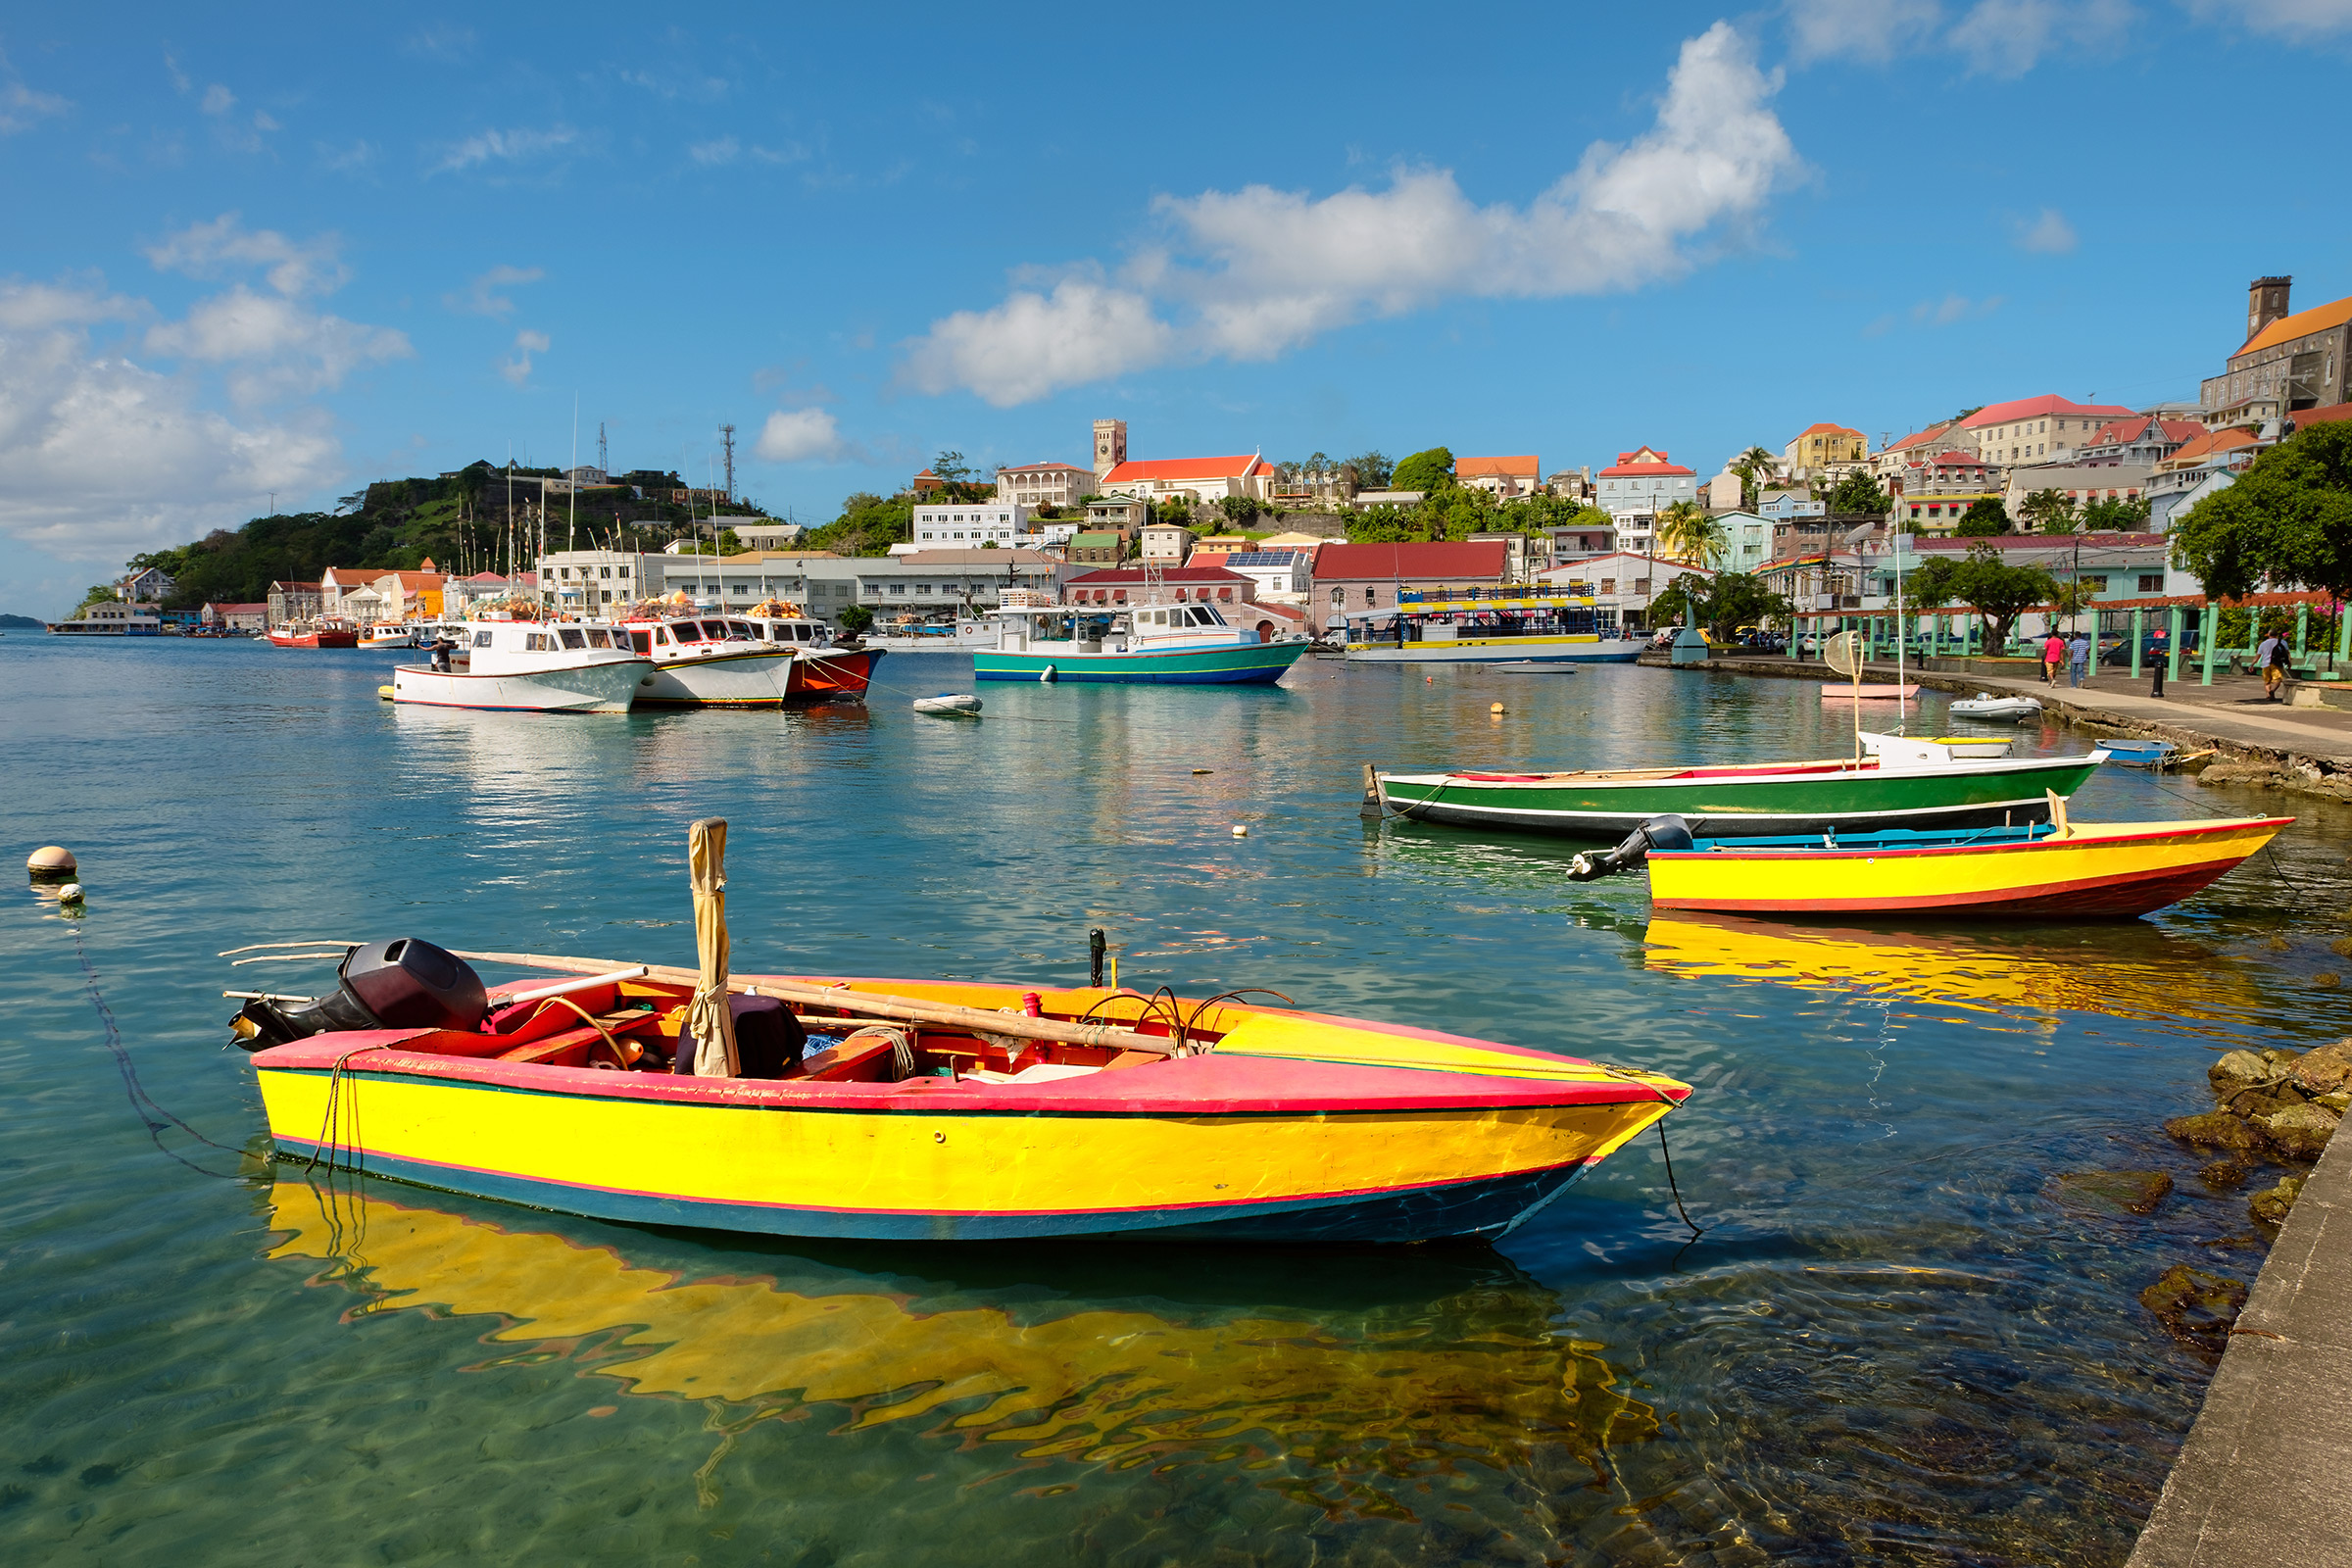 Grenada St. George's Carenaga Harbour